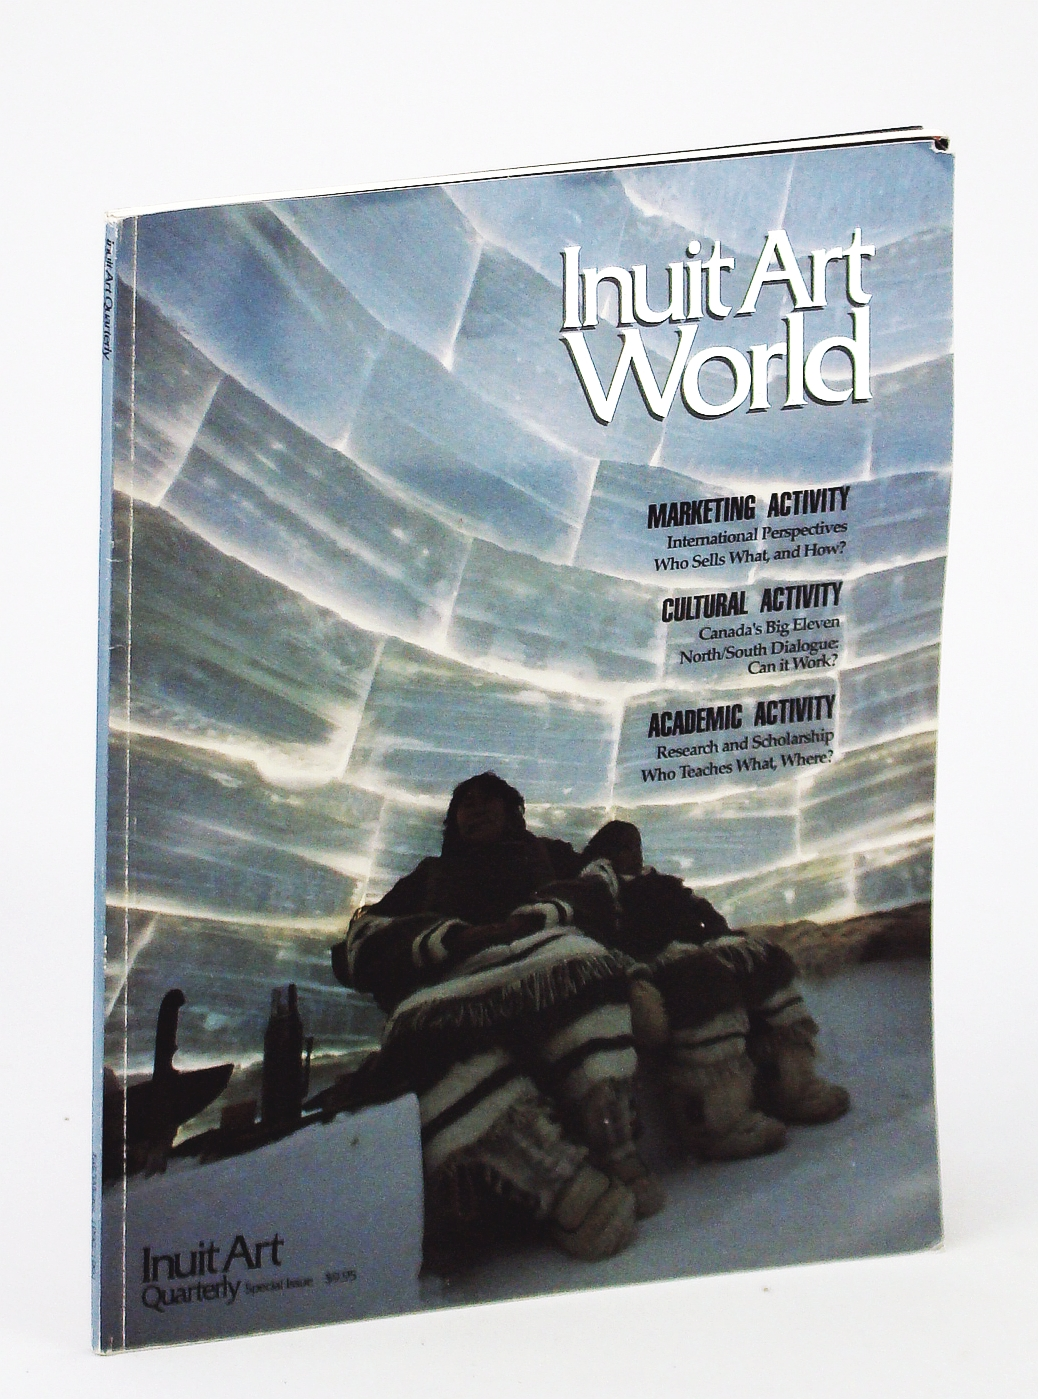 Image for INUIT ART WORLD - Inuit Art Quarterly Vol. 5 No. 4 Fall/Winter 1990/1991: Special Issue